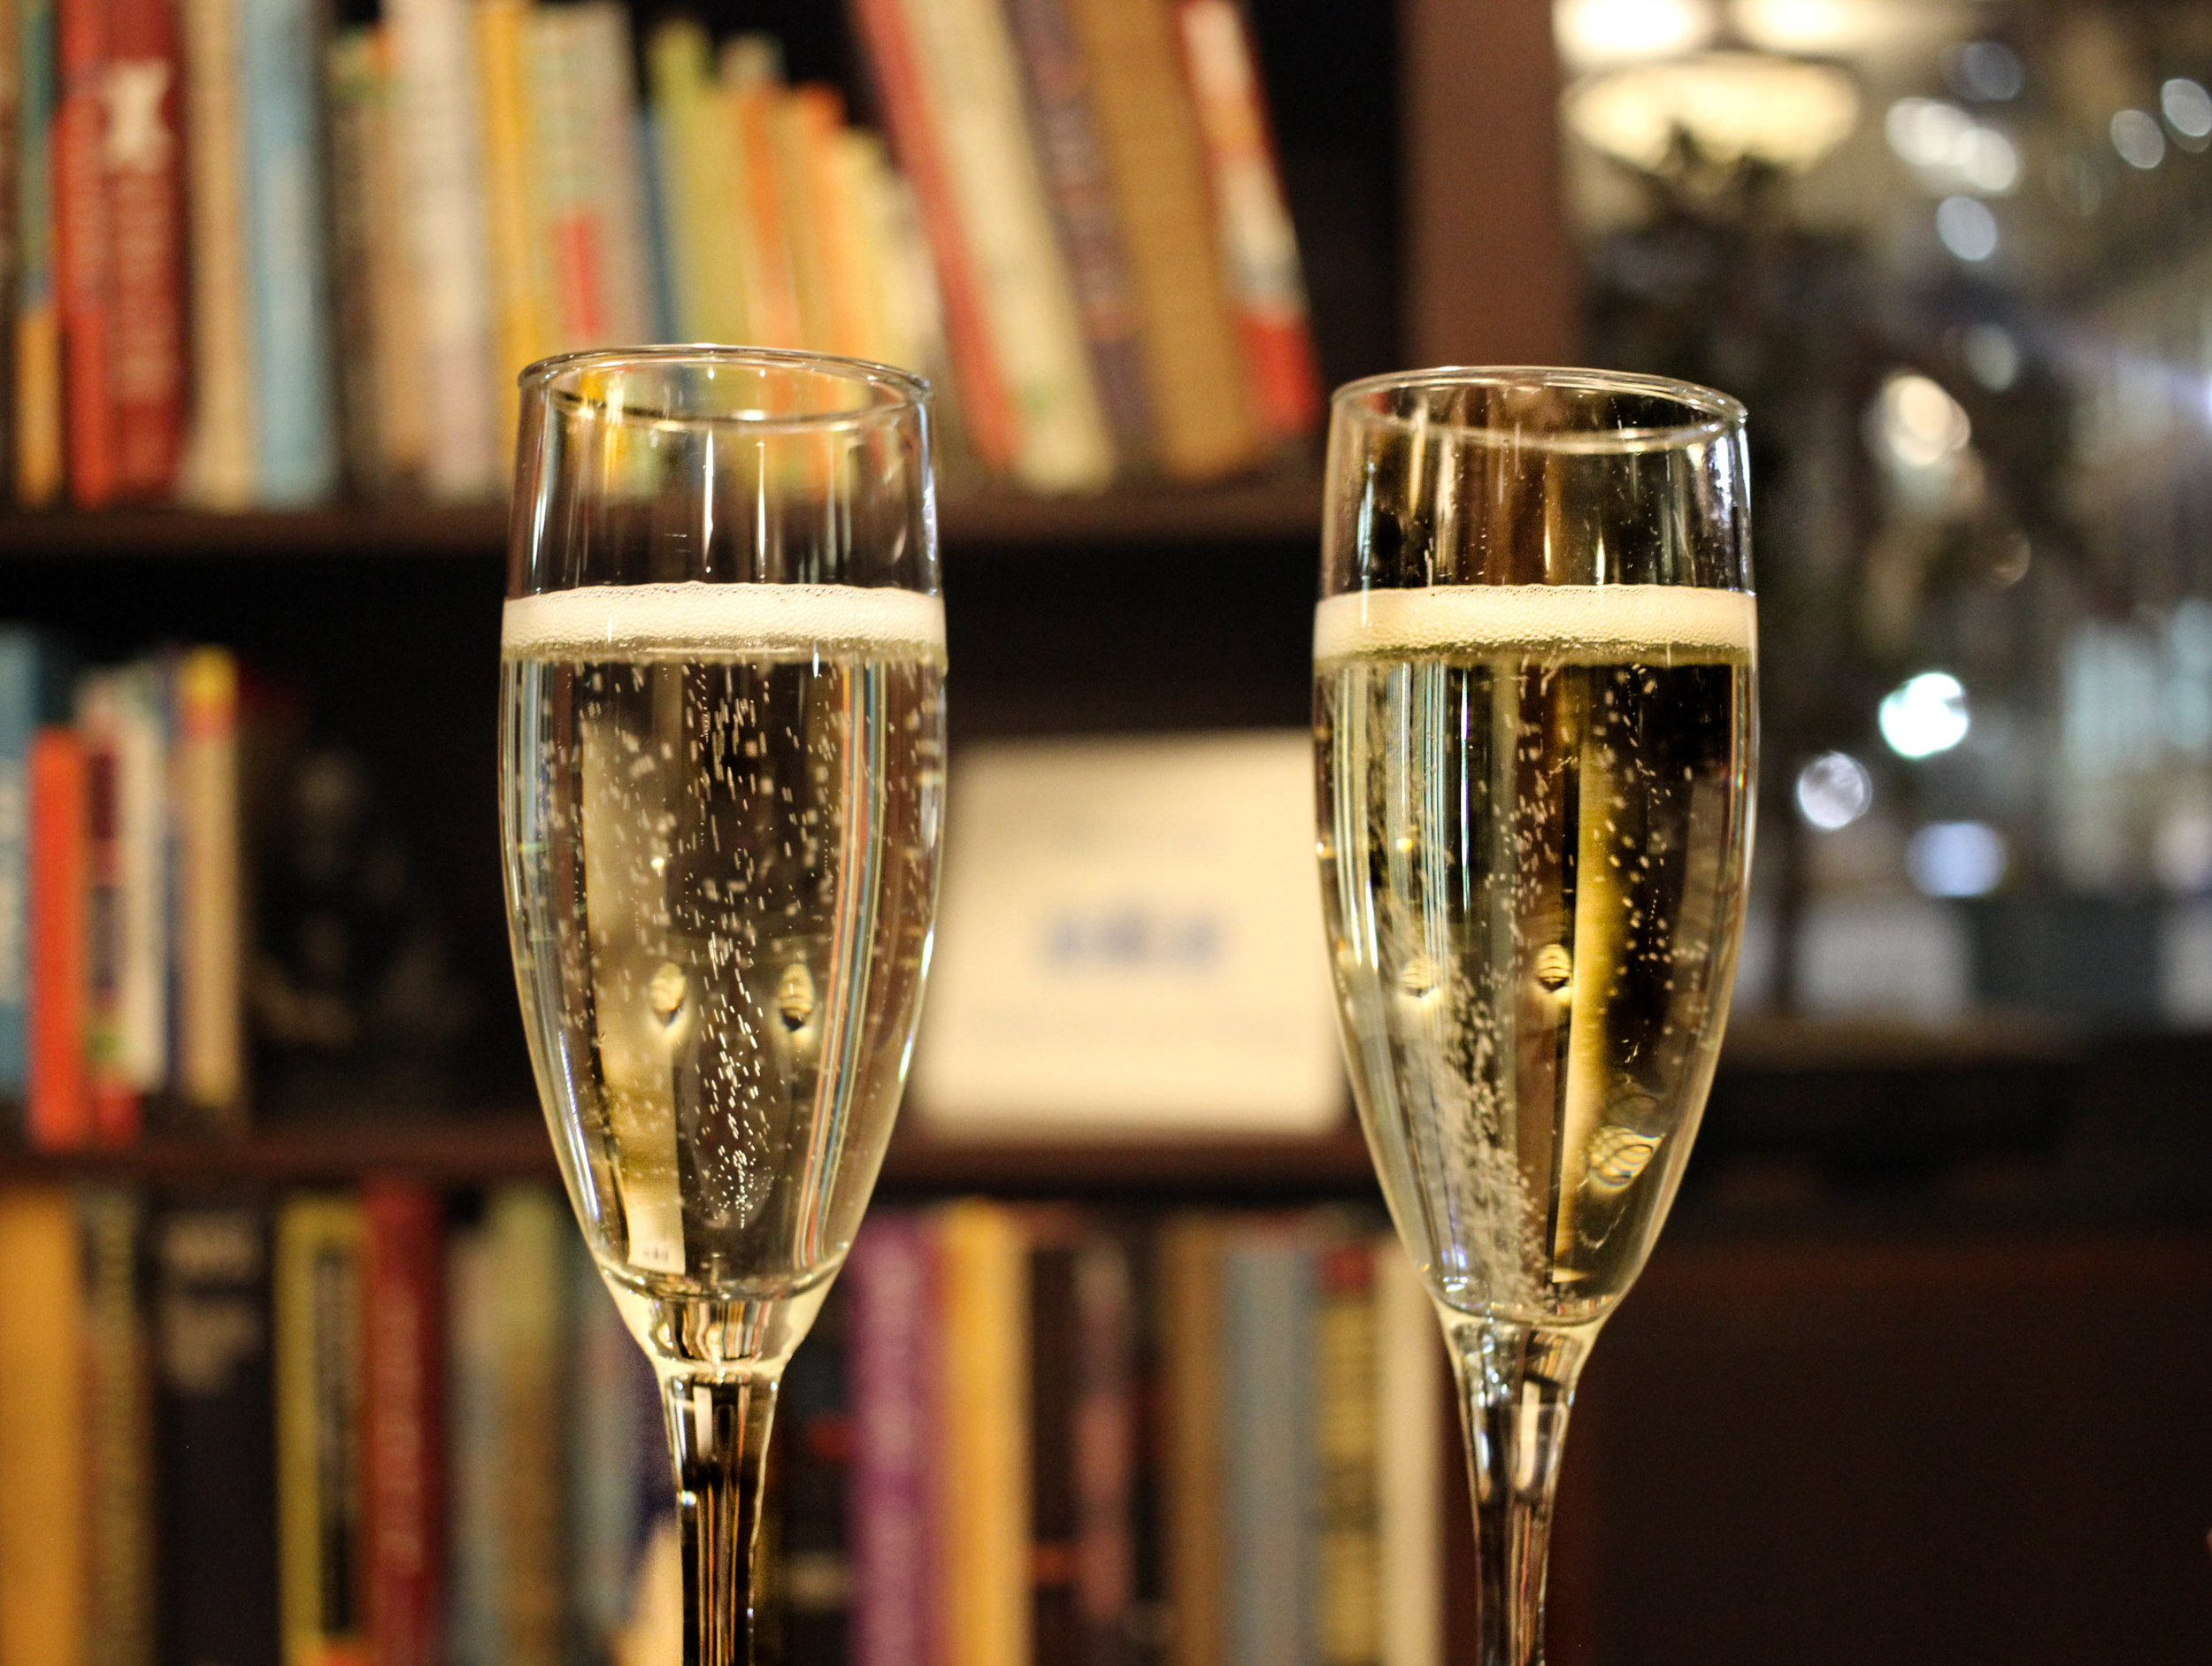 Enjoying Prosecco in the reading room